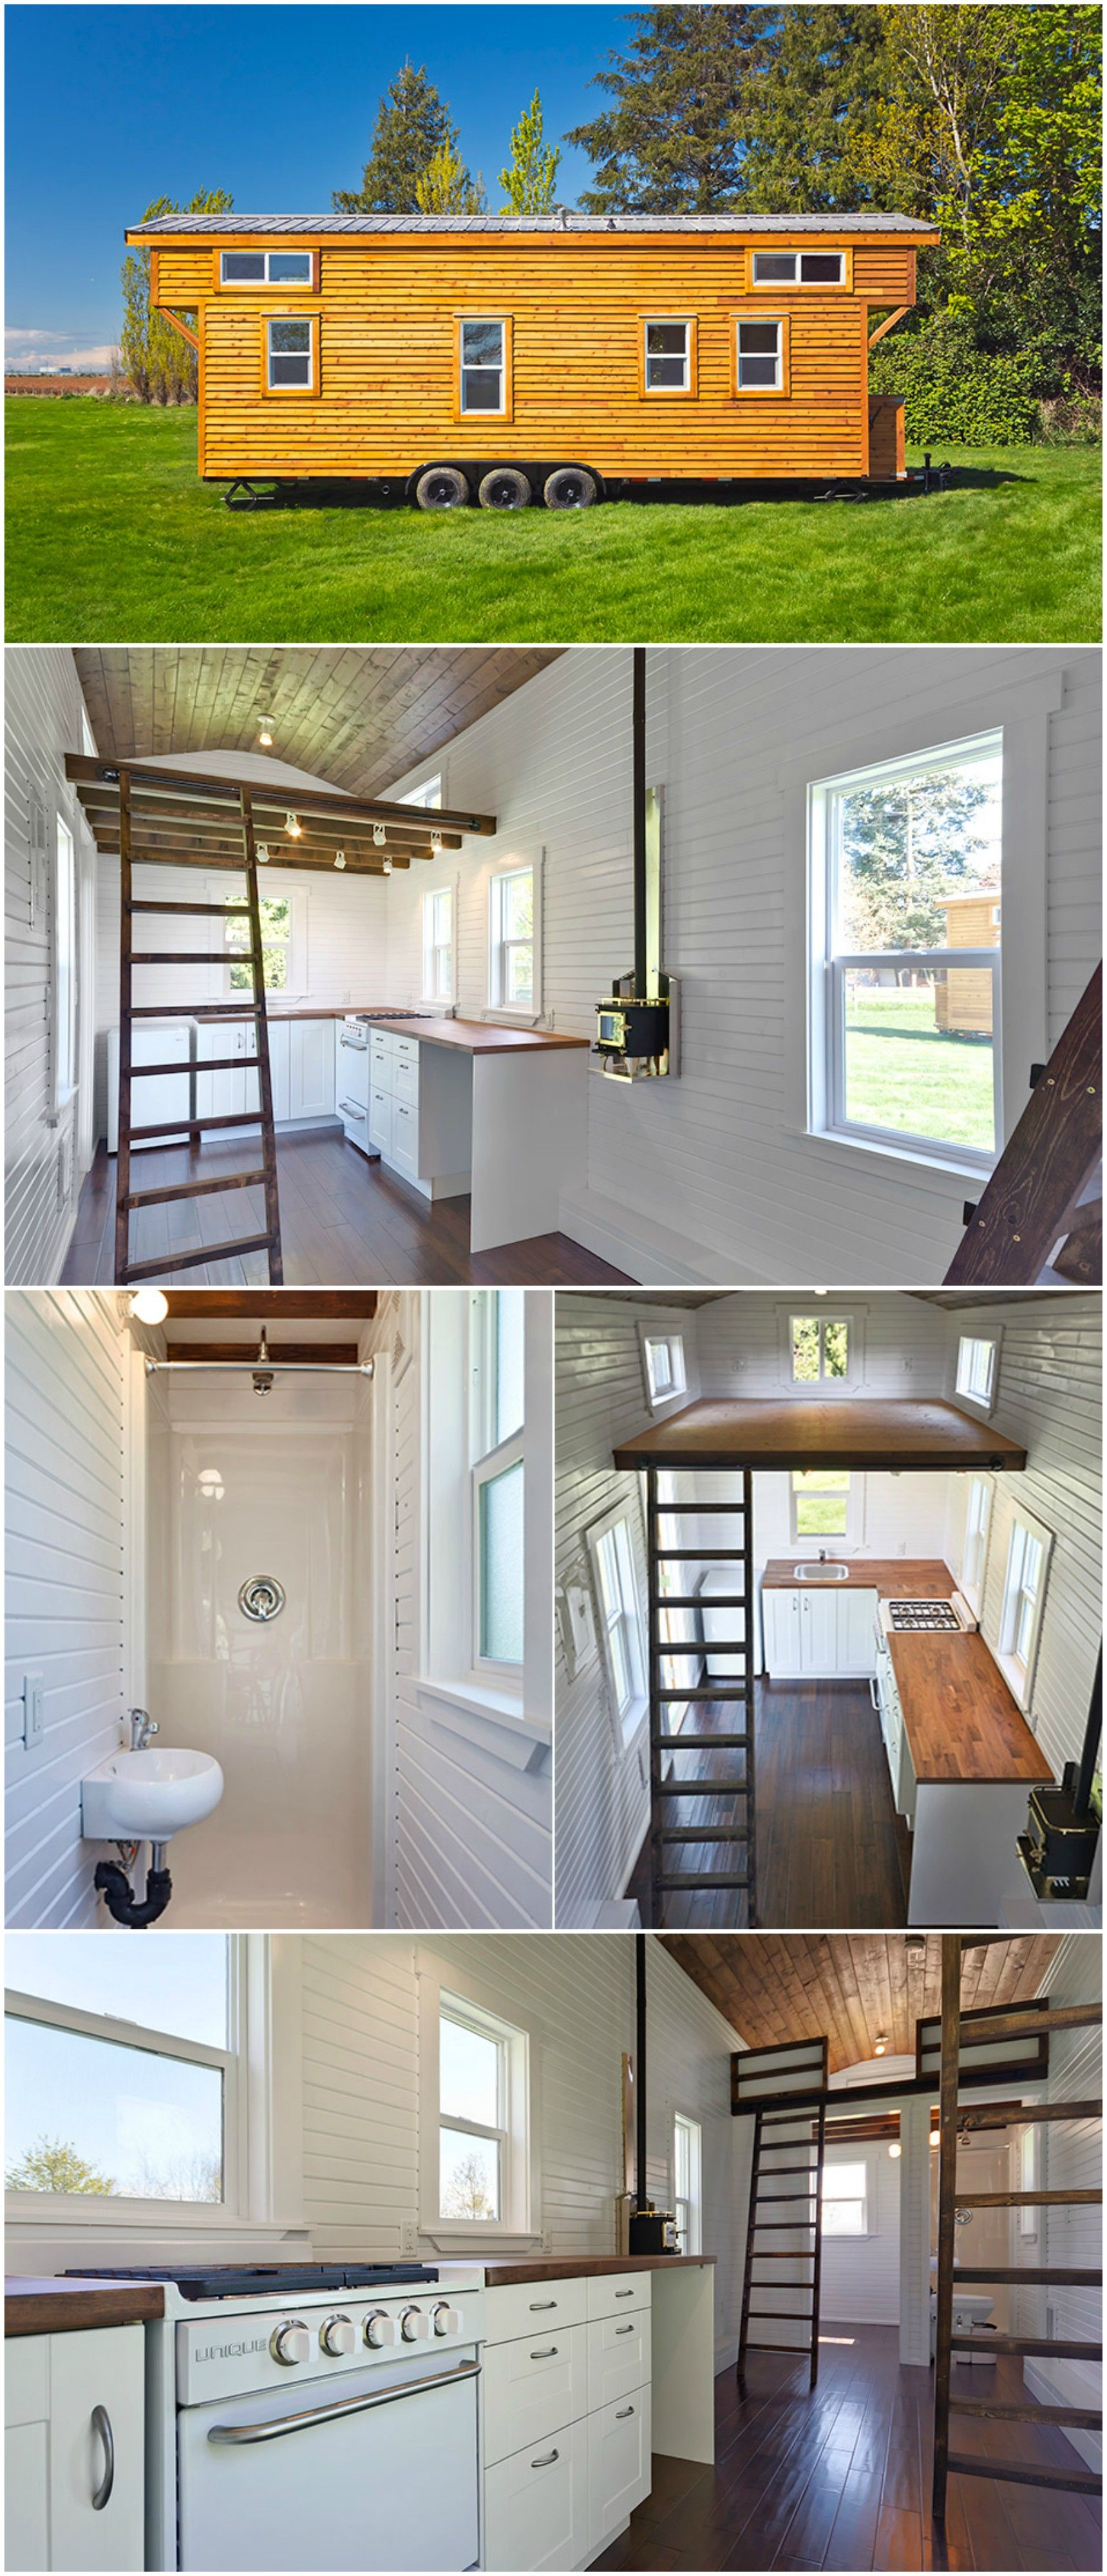 Loft Edition By Mint Tiny Homes   Tiny Houses On Wheels For Sale